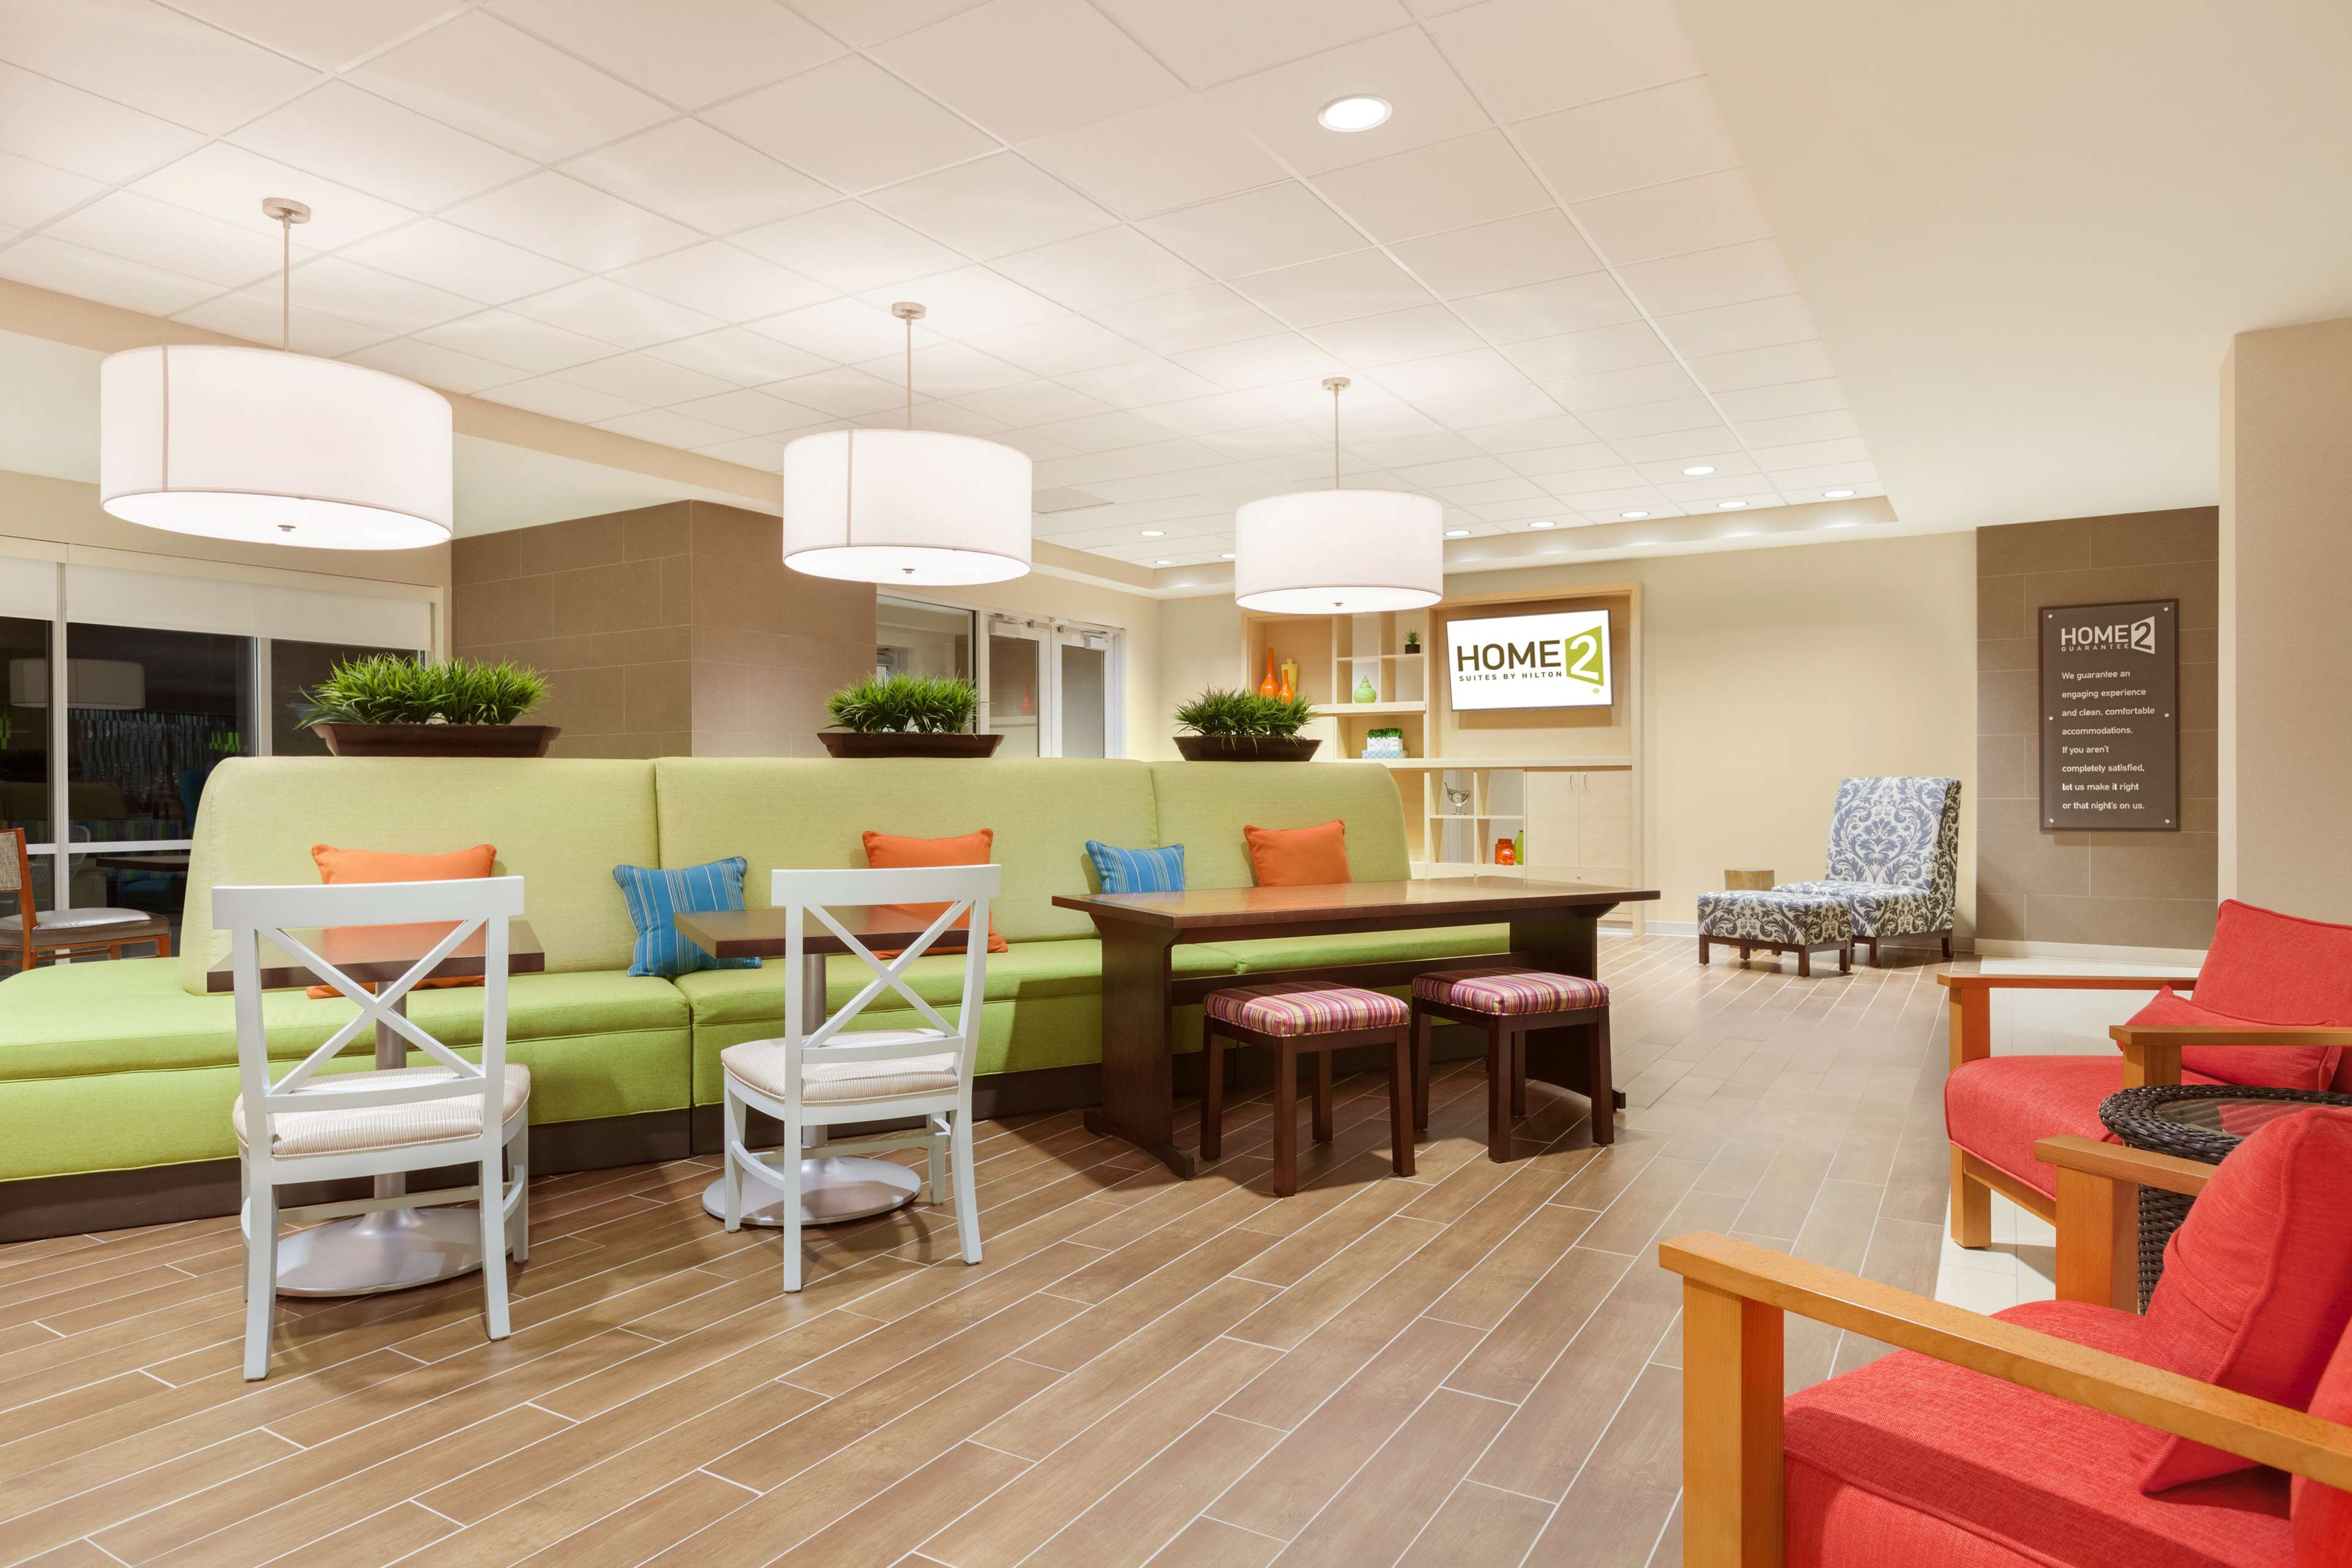 Home2 Suites By Hilton Youngstown West - Austintown image 6